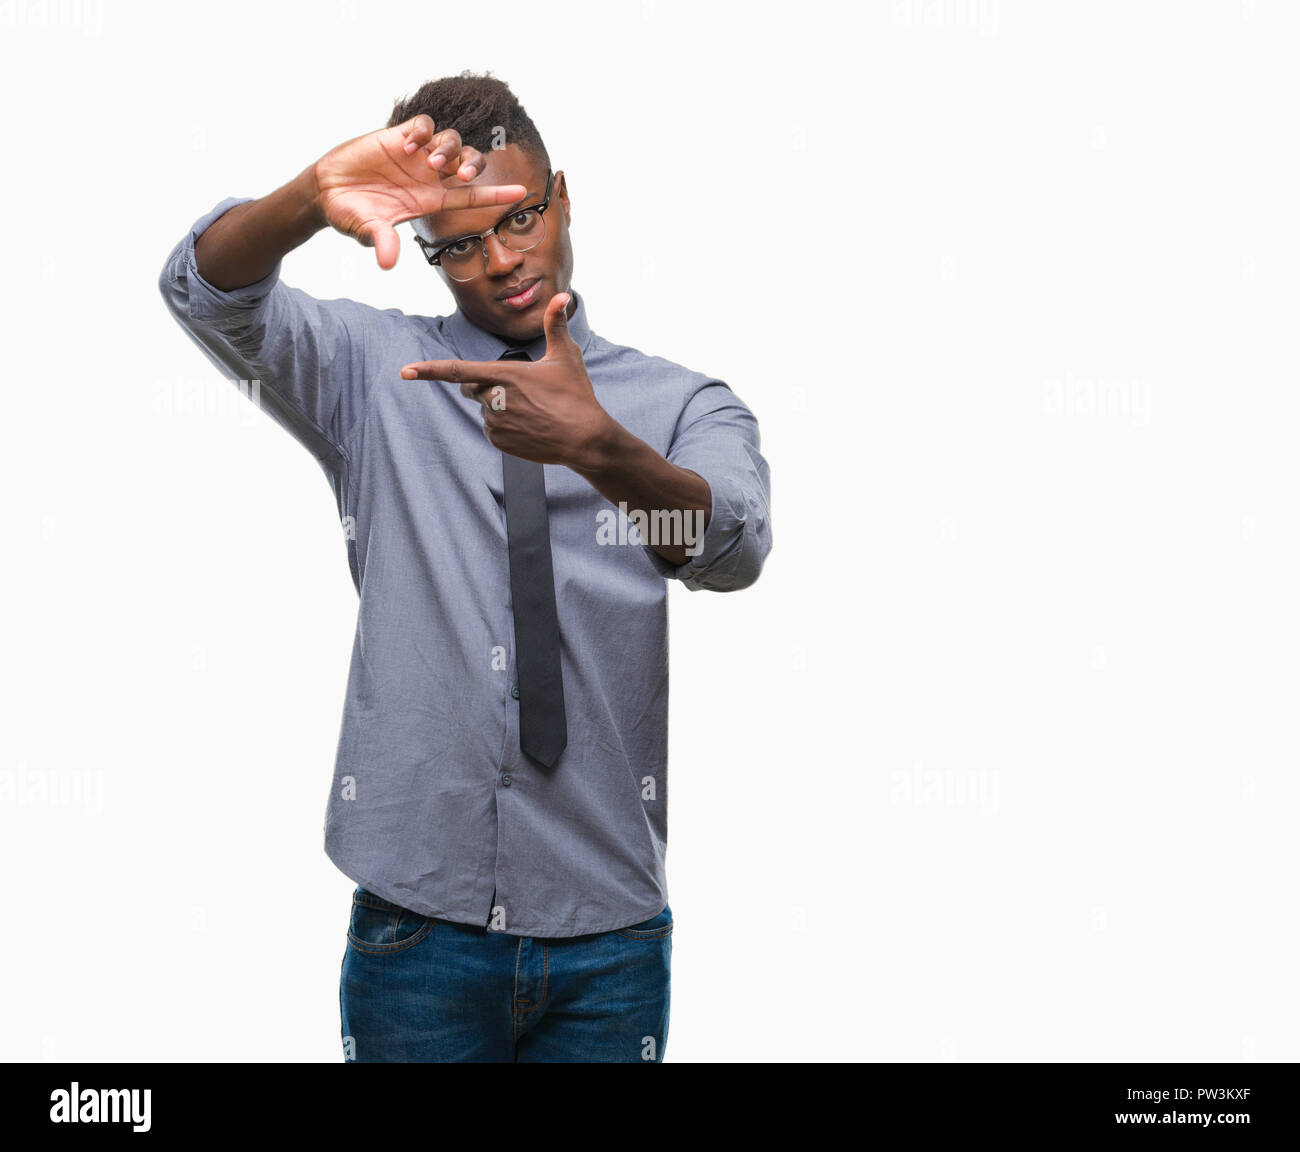 African American Man Making Frame Stock Photos & African American ...